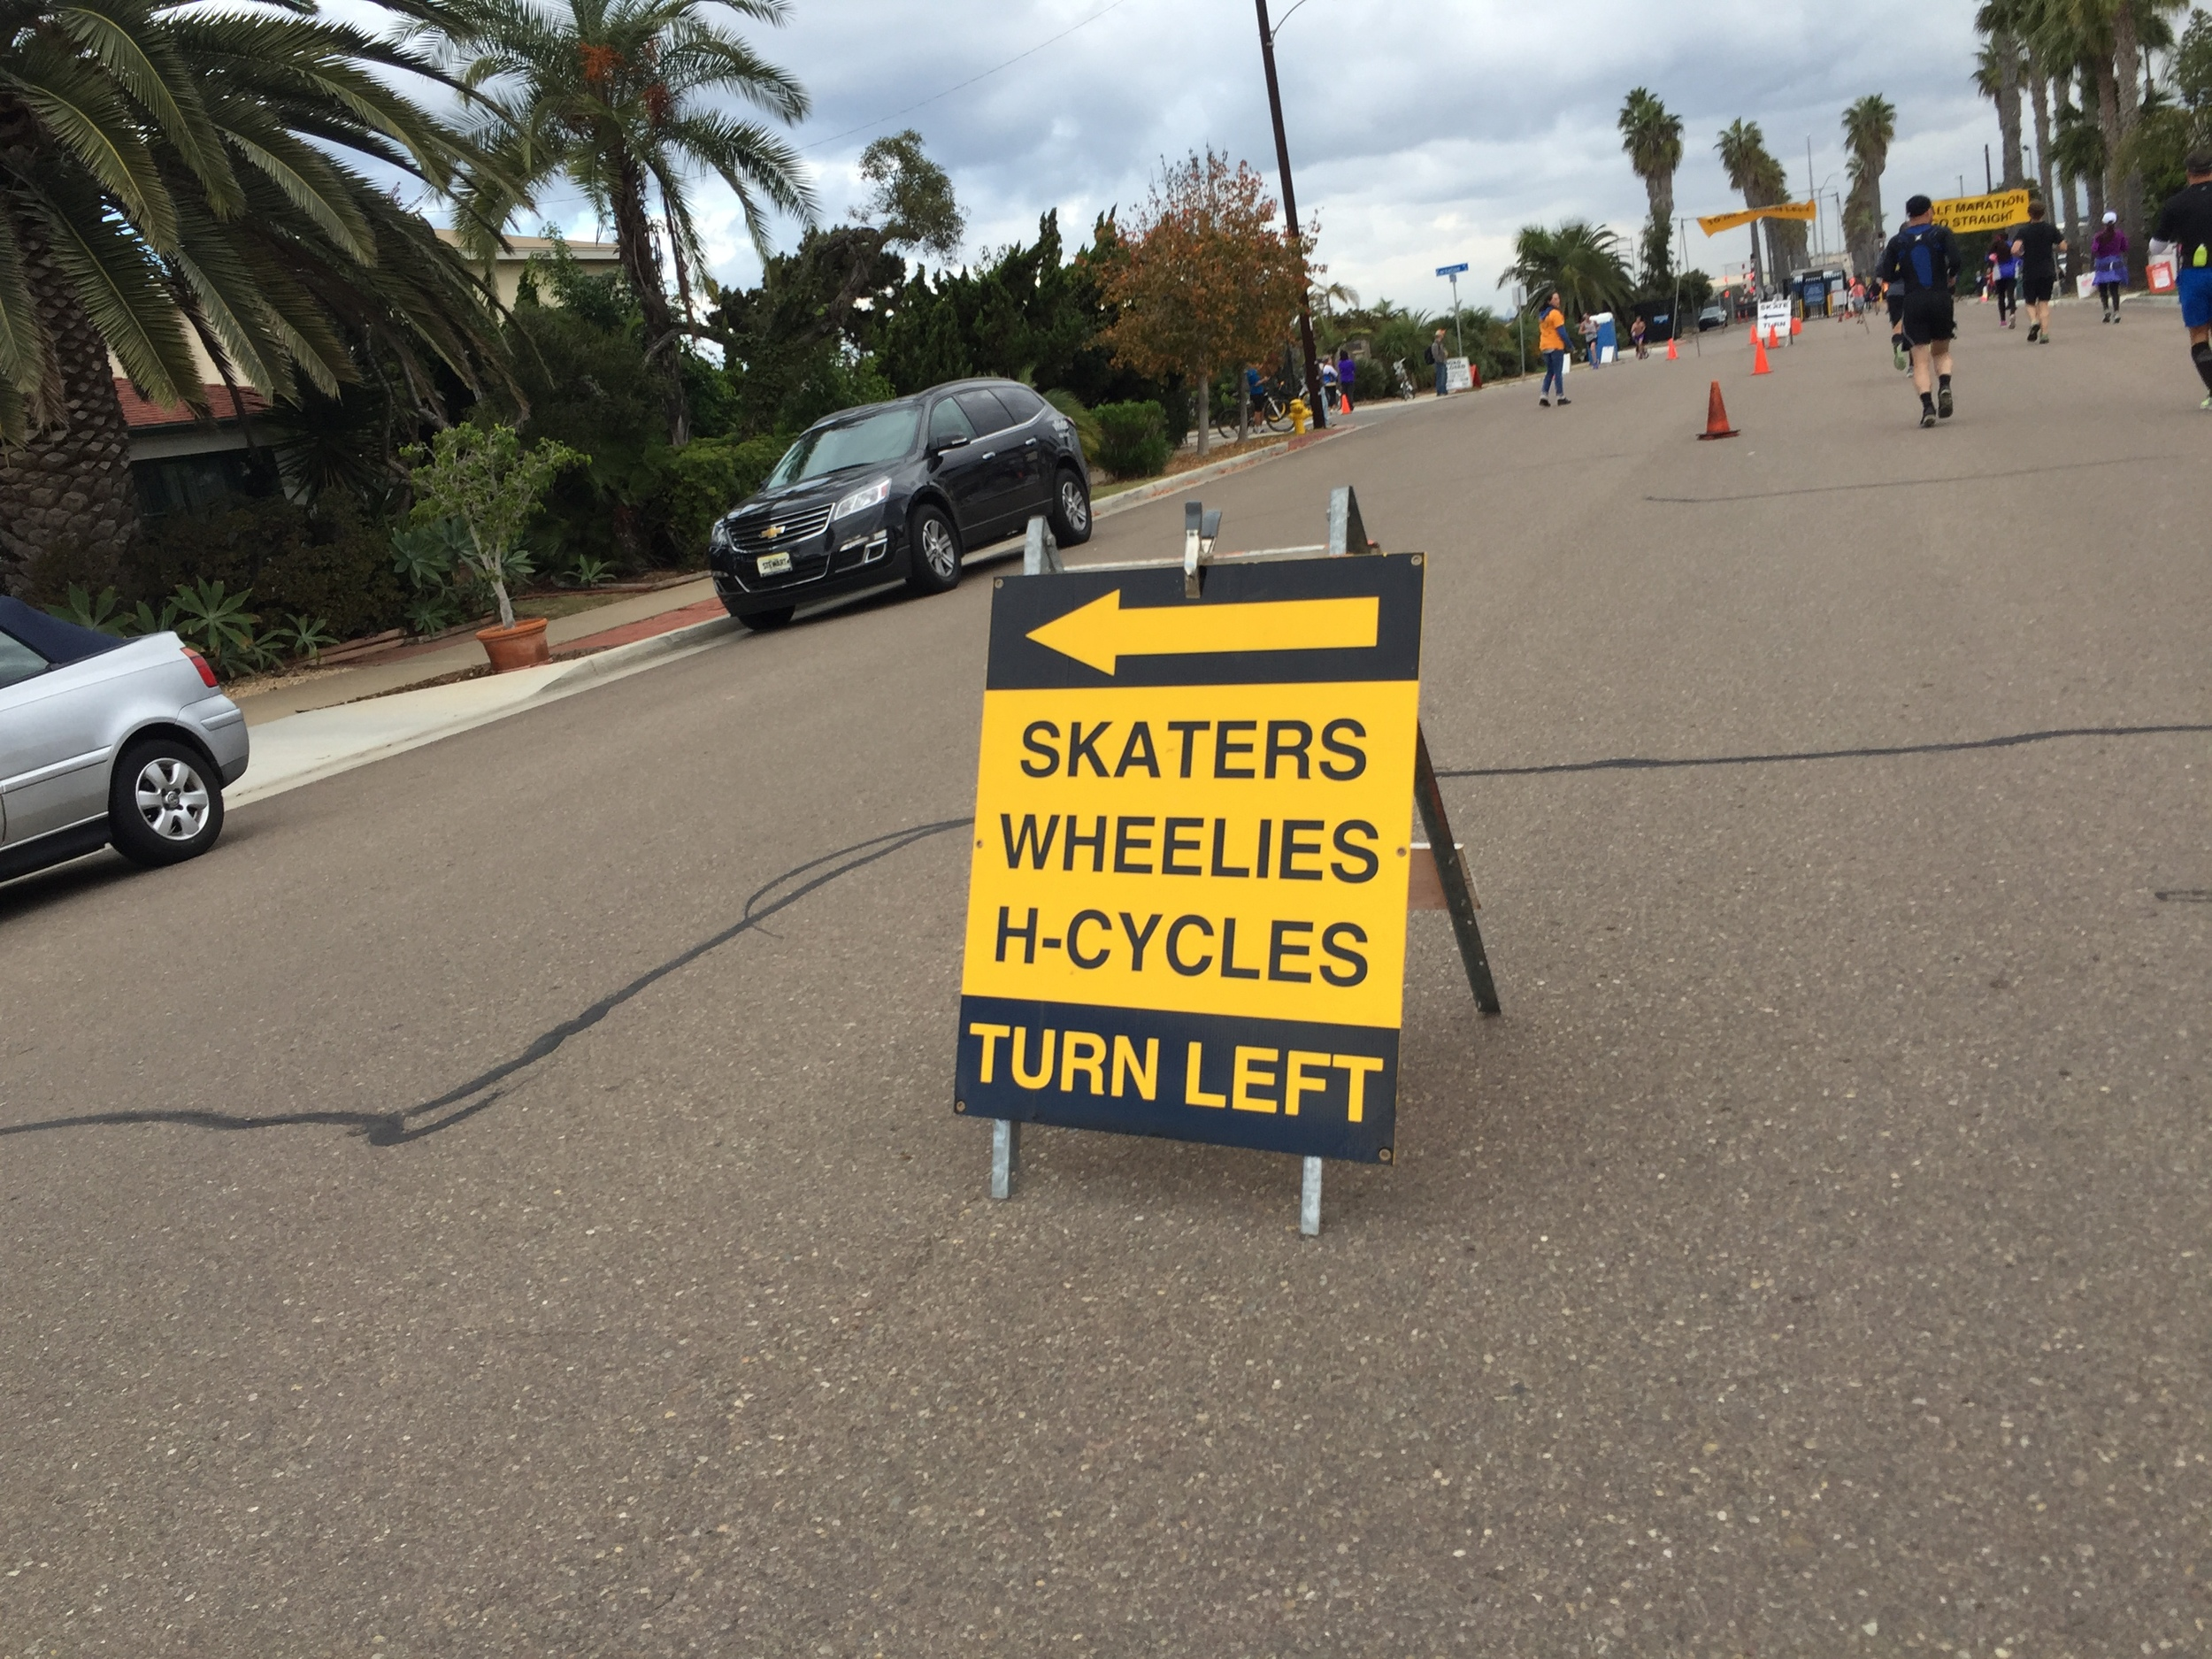 Such an obscure race. There was an inline skate division and even an elliptigo division!